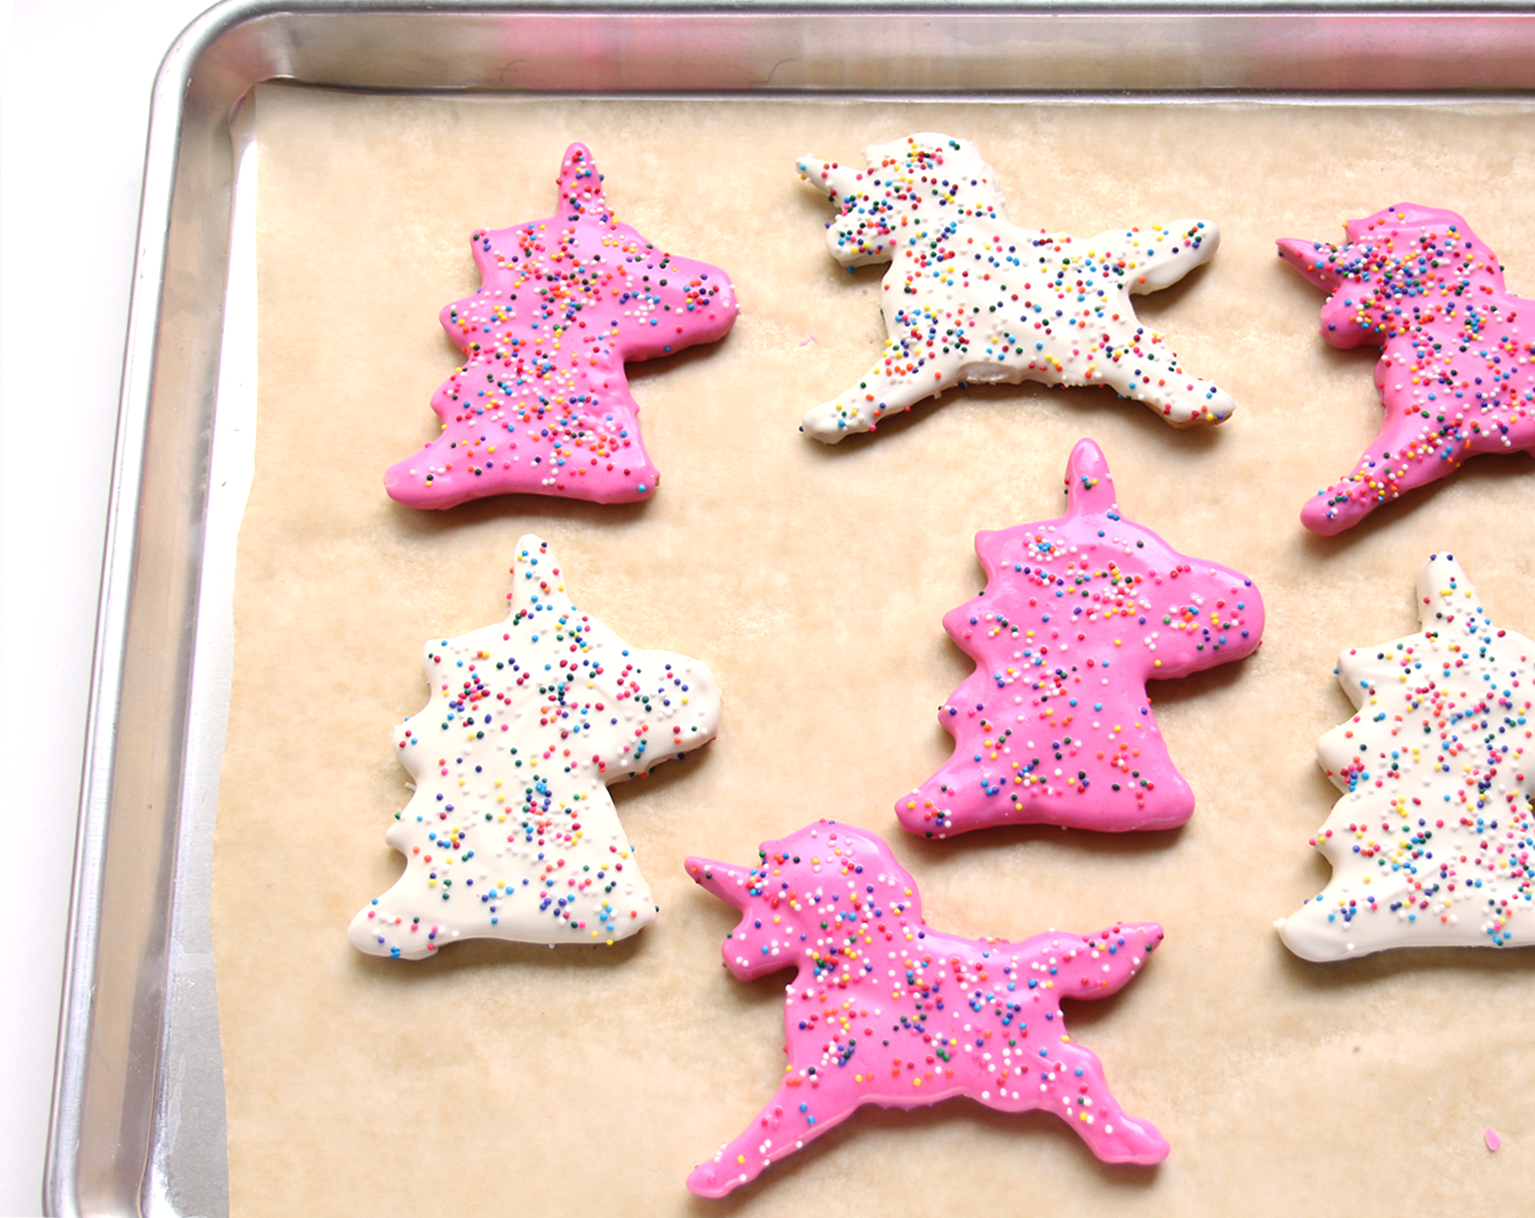 Baking unicorn cookies